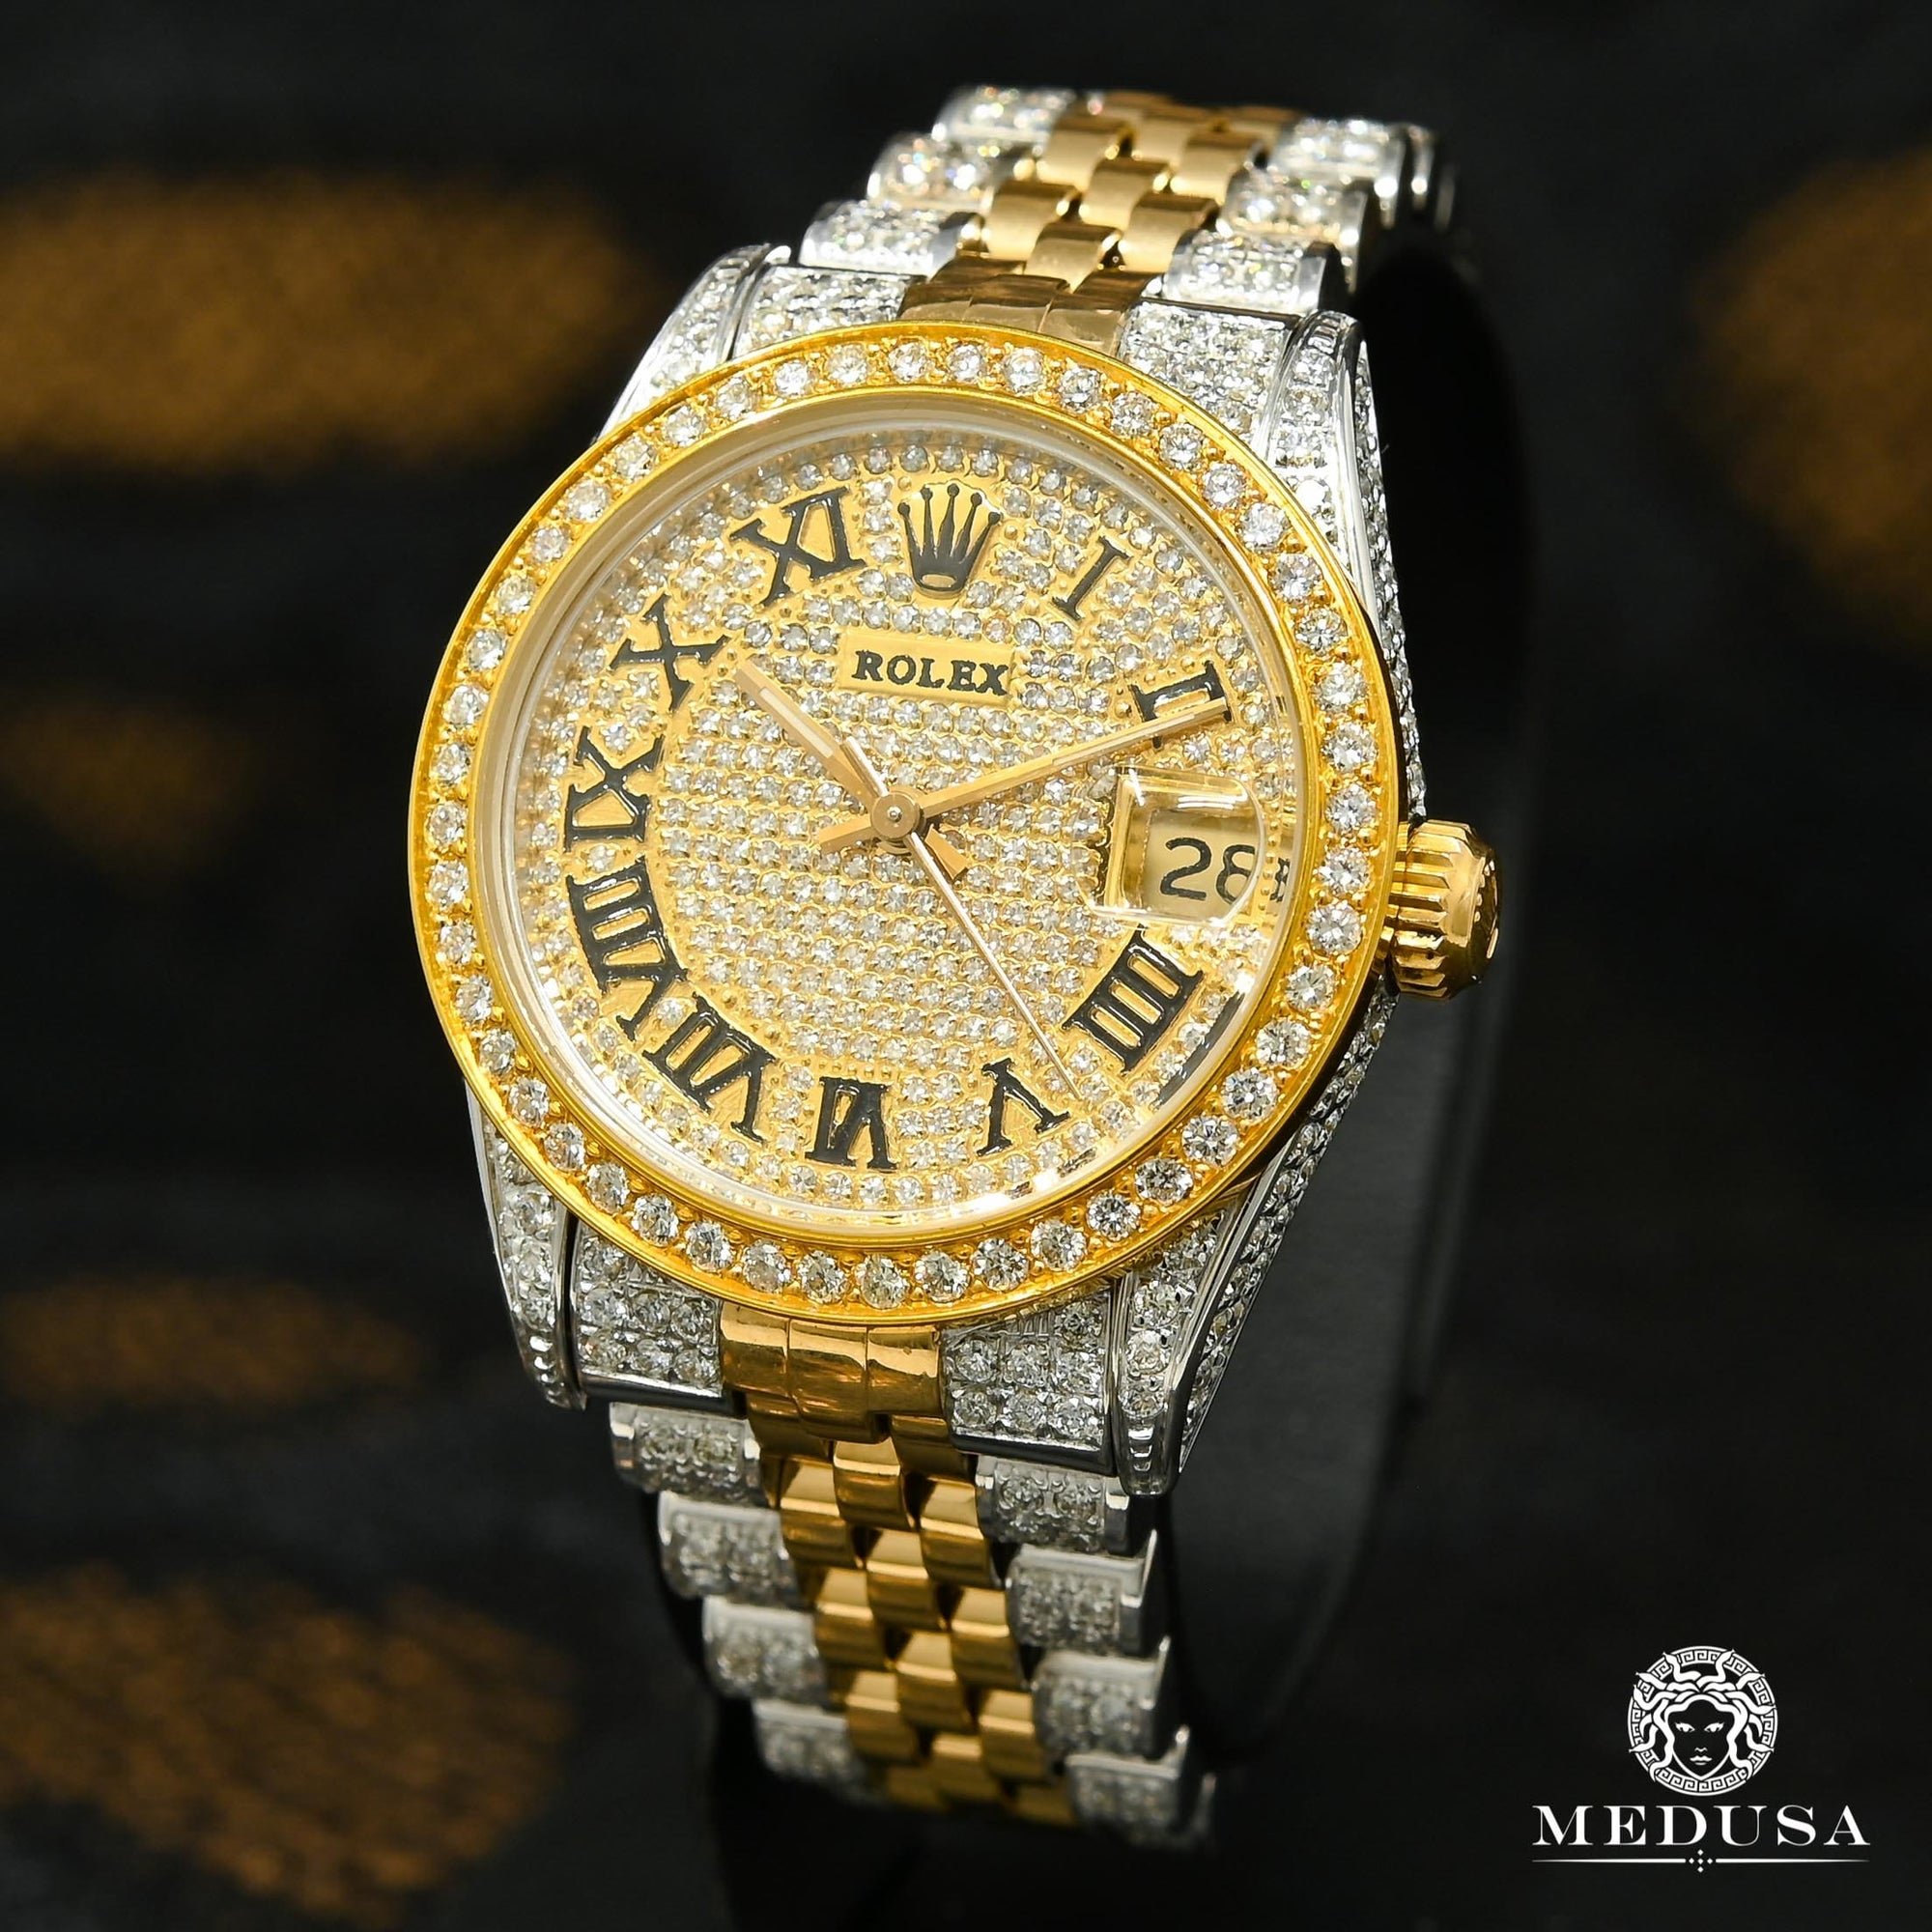 Montre Rolex | Montre Femme Rolex Lady-Datejust 31mm - Iced Out Or 2 Tons